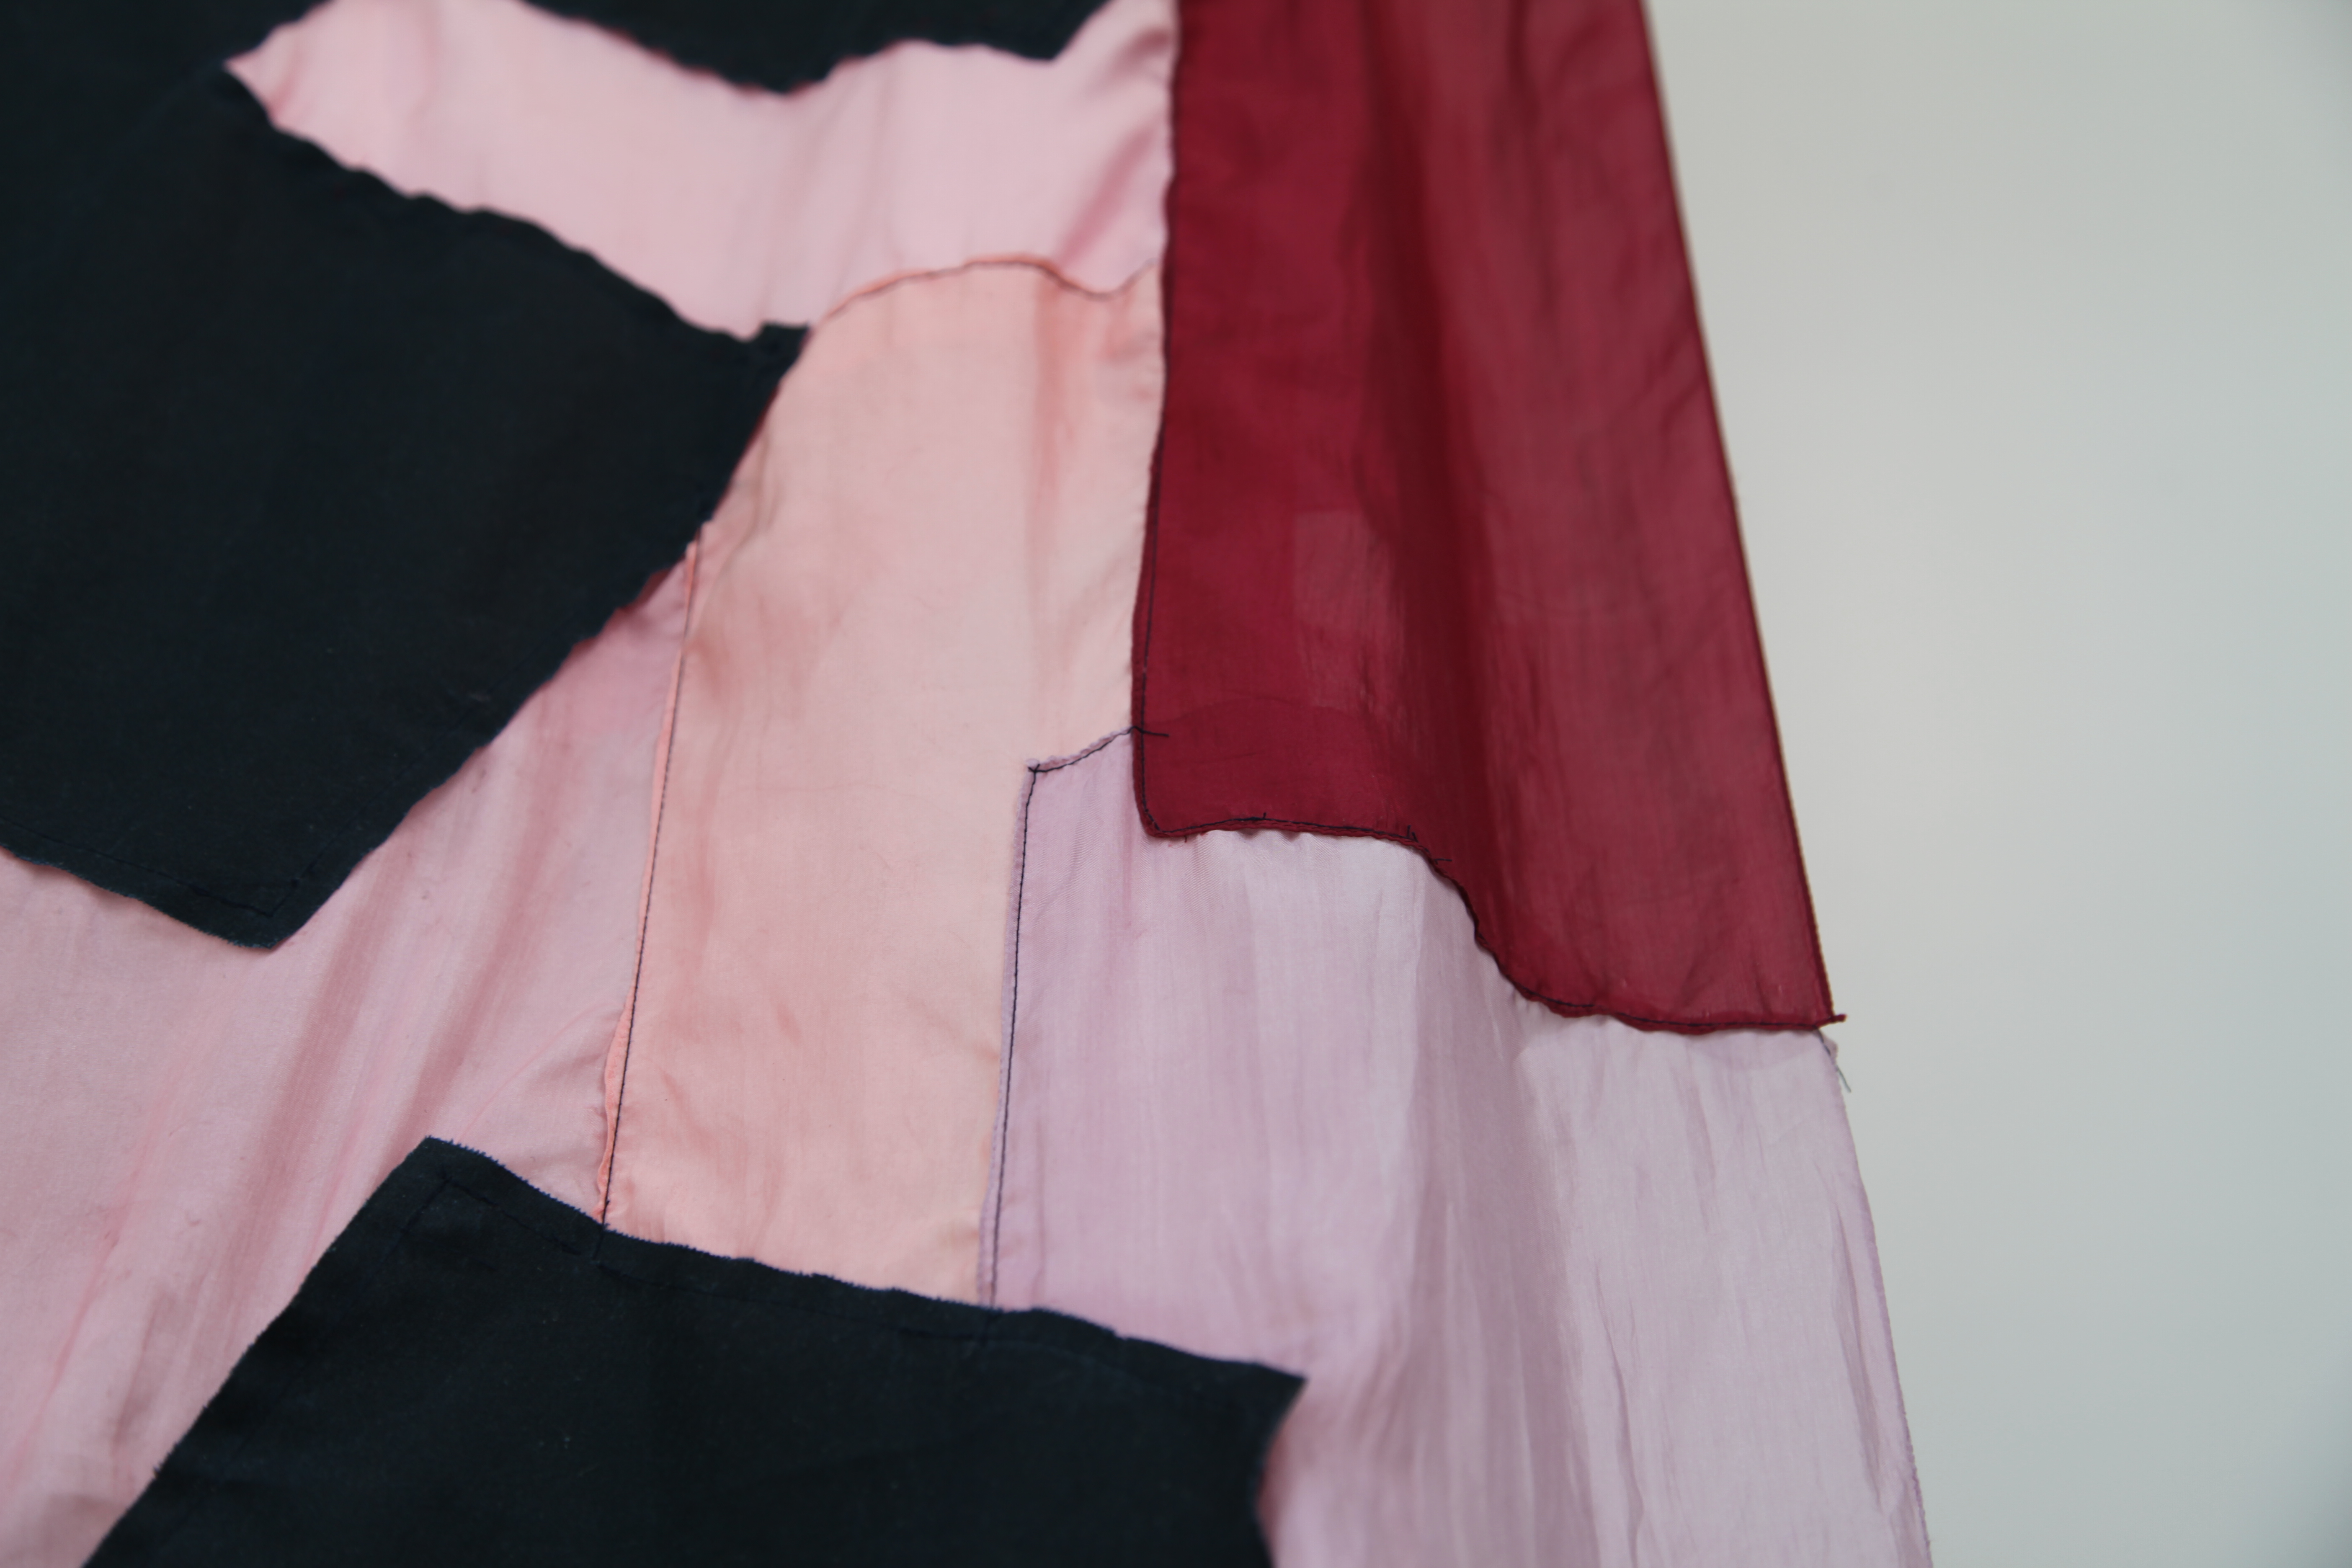 Emma Fitts, Bomber Jacket for Marilyn Waring, 2014